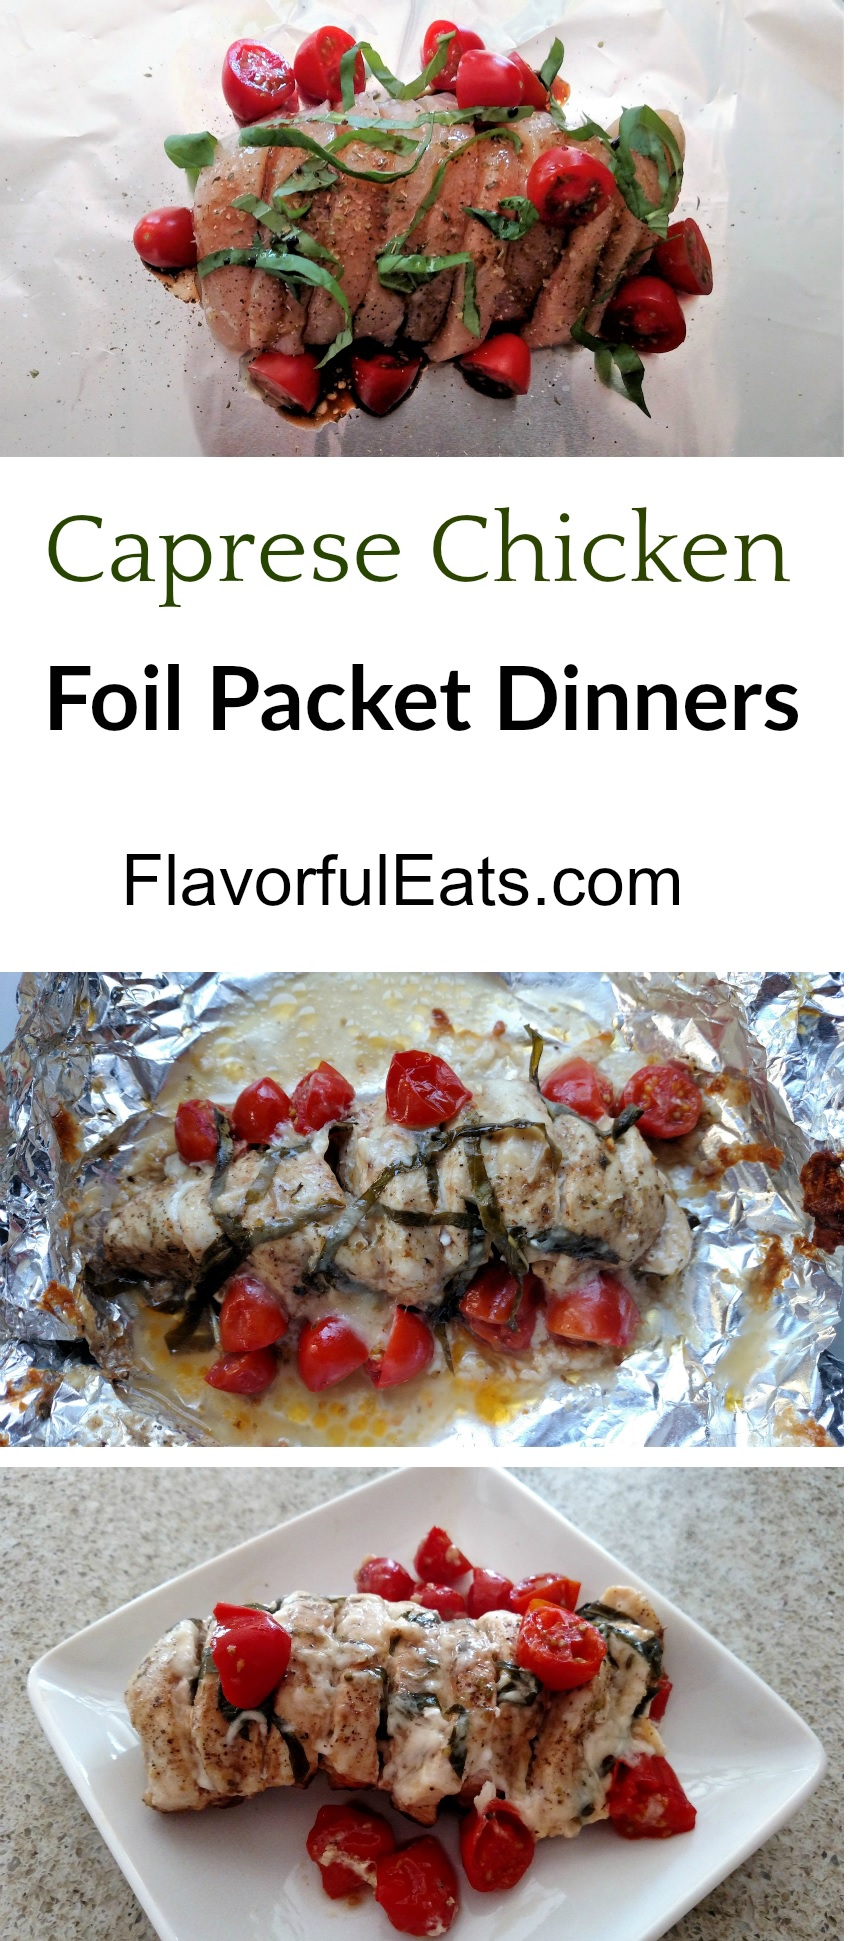 Caprese Chicken Foil Packet Dinners